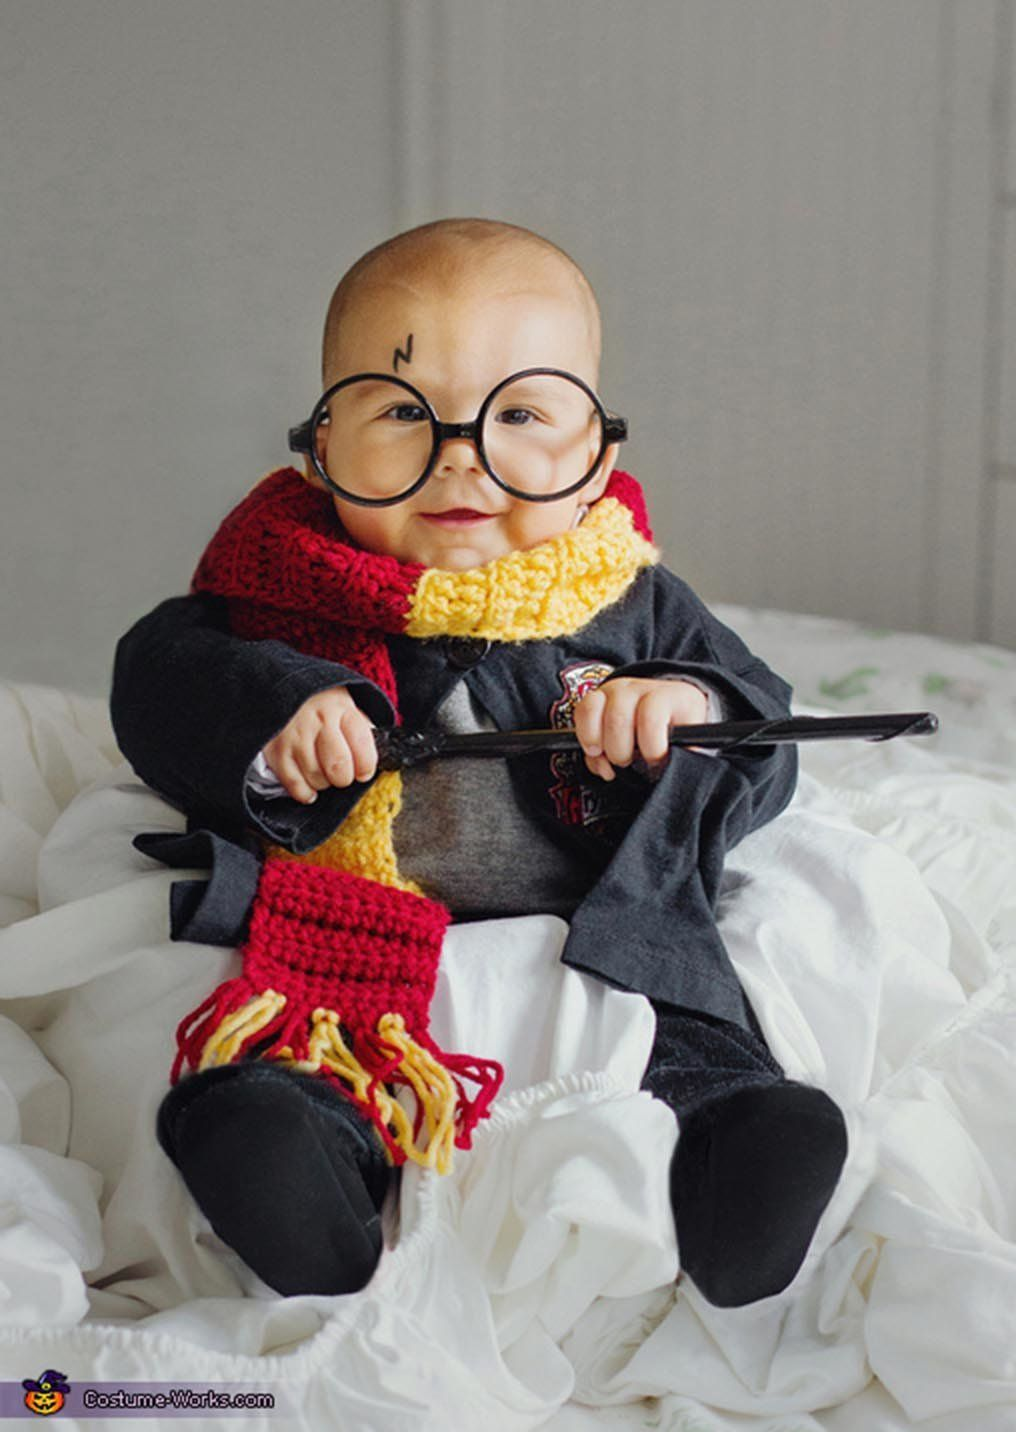 "Via <a href=""http://www.costume-works.com/costumes_for_babies/harry-potter-baby2.html"" target=""_blank"">Costume Works</a>"